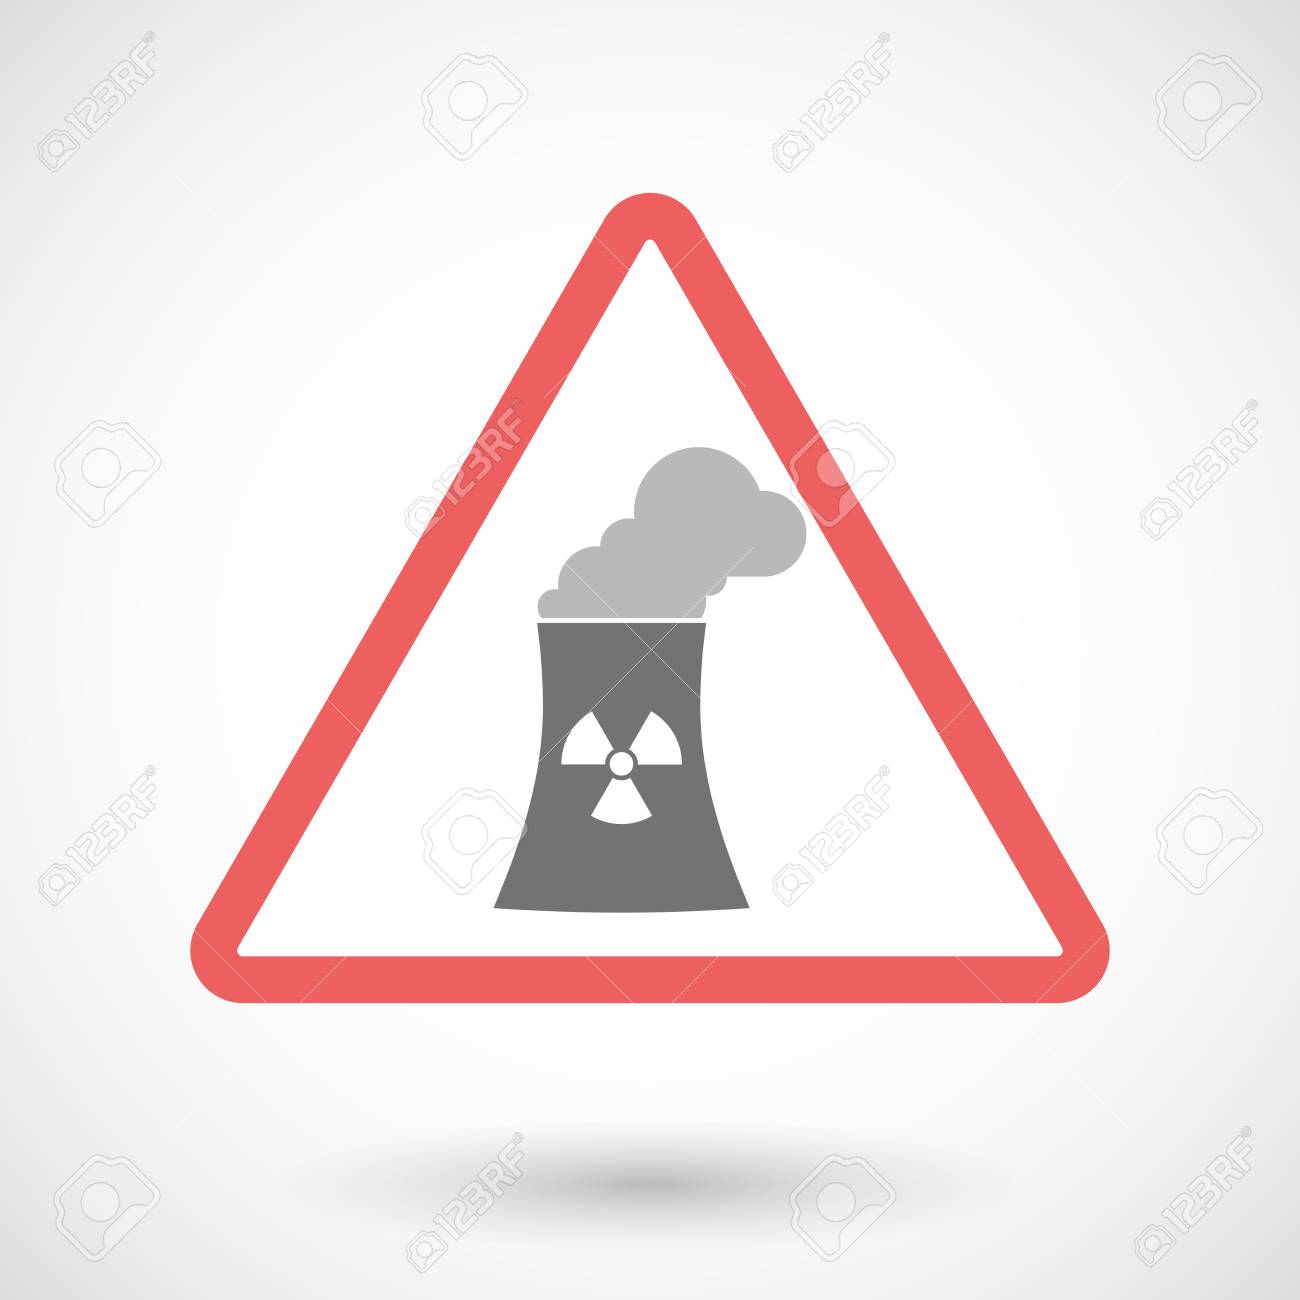 Illustration of a warning signal with a nuclear power station